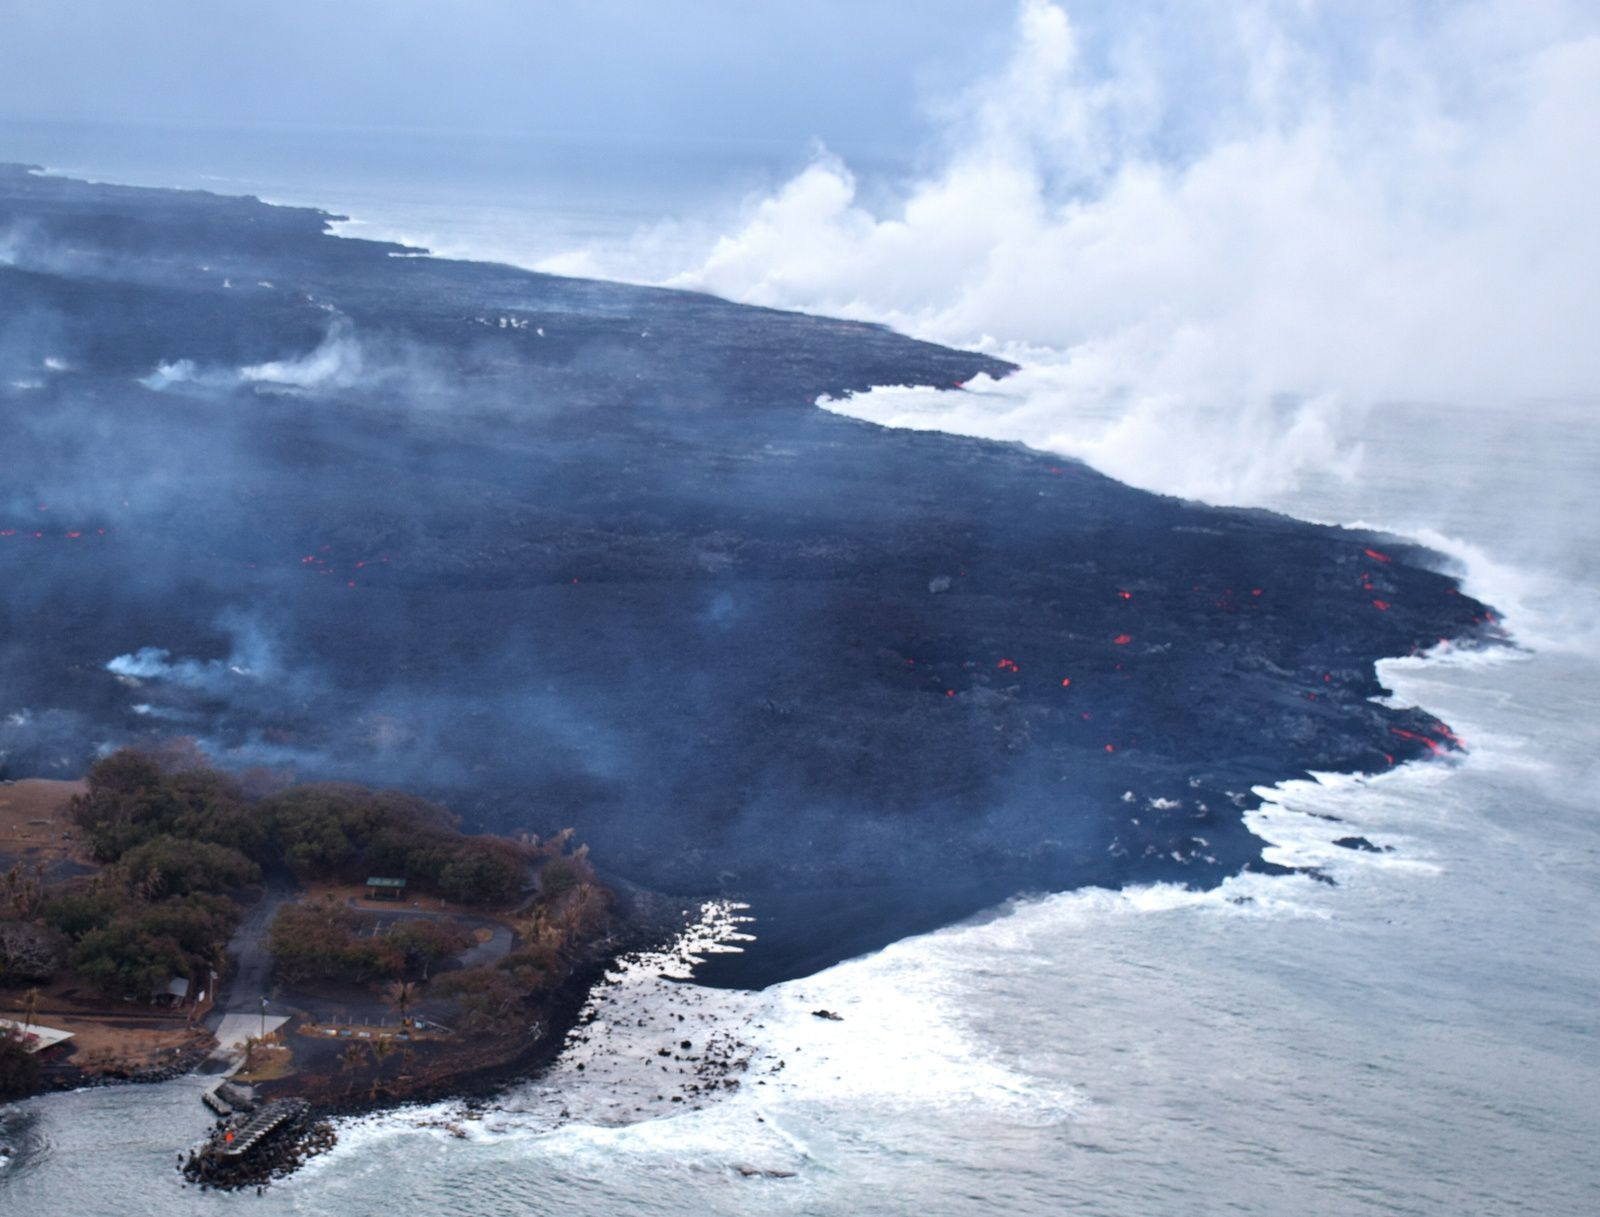 Kilauea East rift zone - The south of the lava field, with some incandescent spots, and the laze plume to the sea - HVO-USGS photo